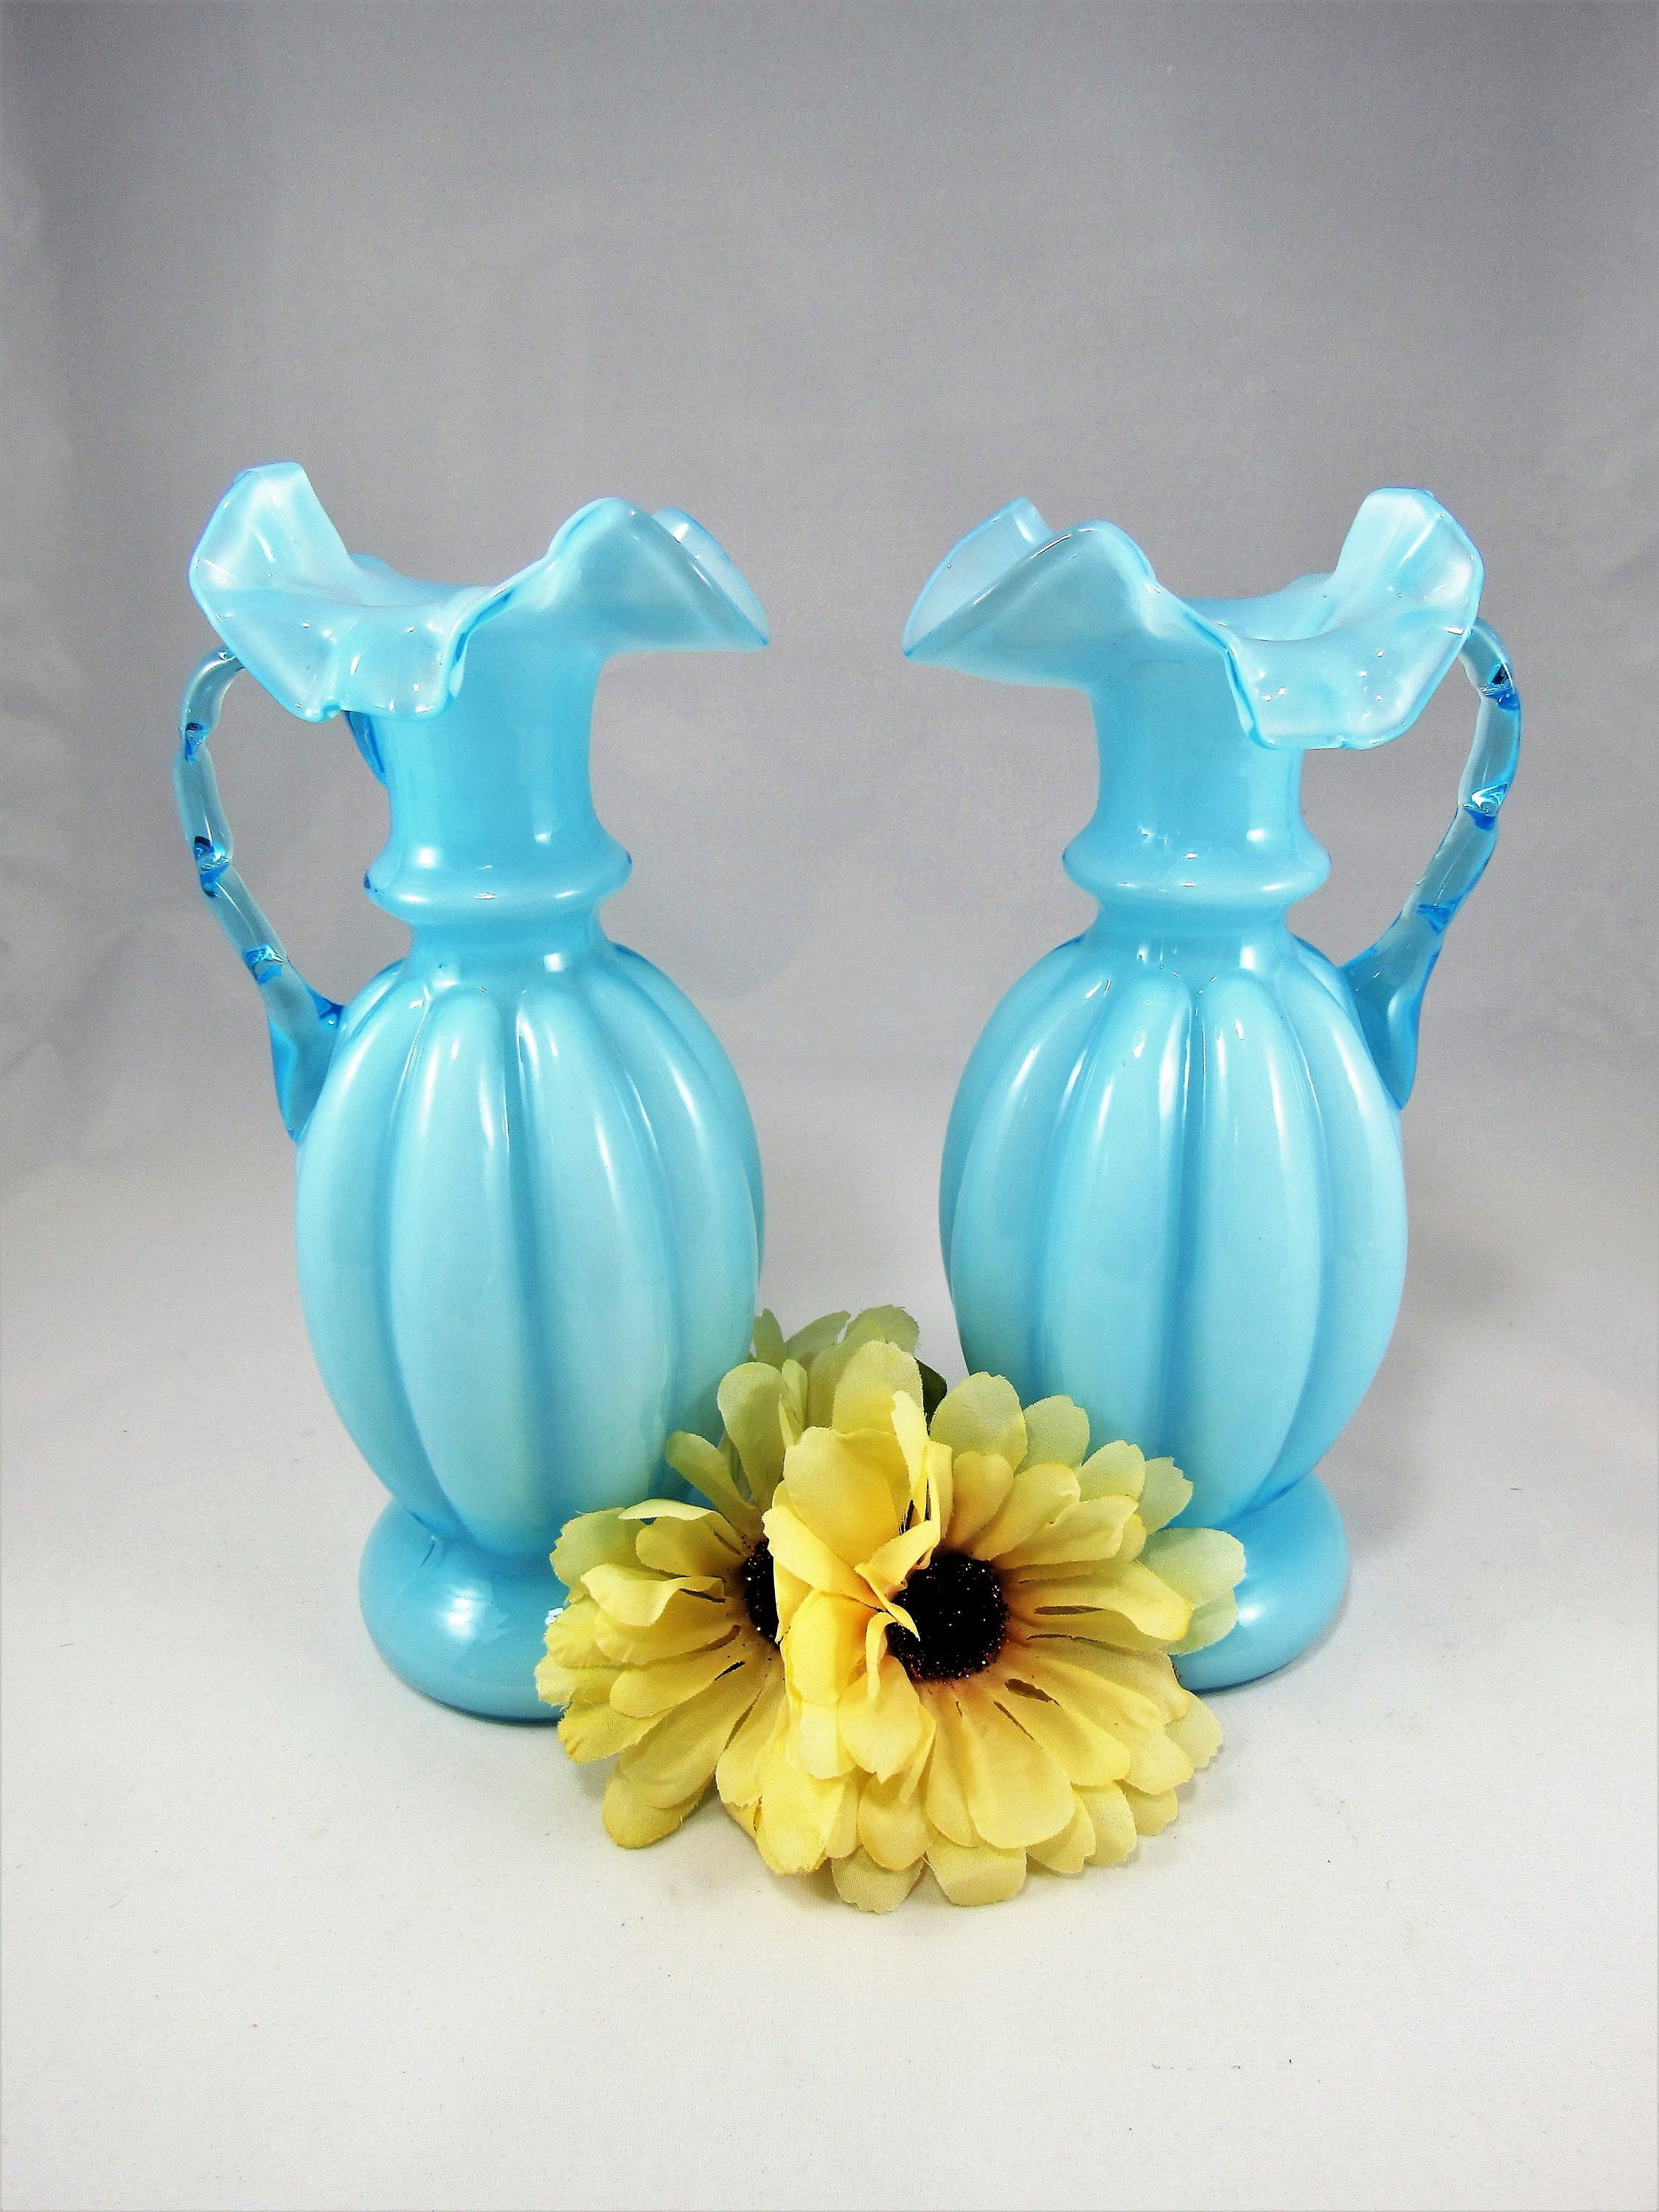 Beautiful Vintage Pair of Blue 8 3/4 Tall FENTON 1940's Blue Overlay on swan balloons, swan cookware, swan rugs, swan animals, swan glass, swan jewelry, swan cookies, swan boxes, swan toys, swan fruit, swan serveware, swan figurines, swan flowers, swan tea set, swan wall decals, swan statuary, swan prints, swan weathervanes, swan paintings, swan cups,